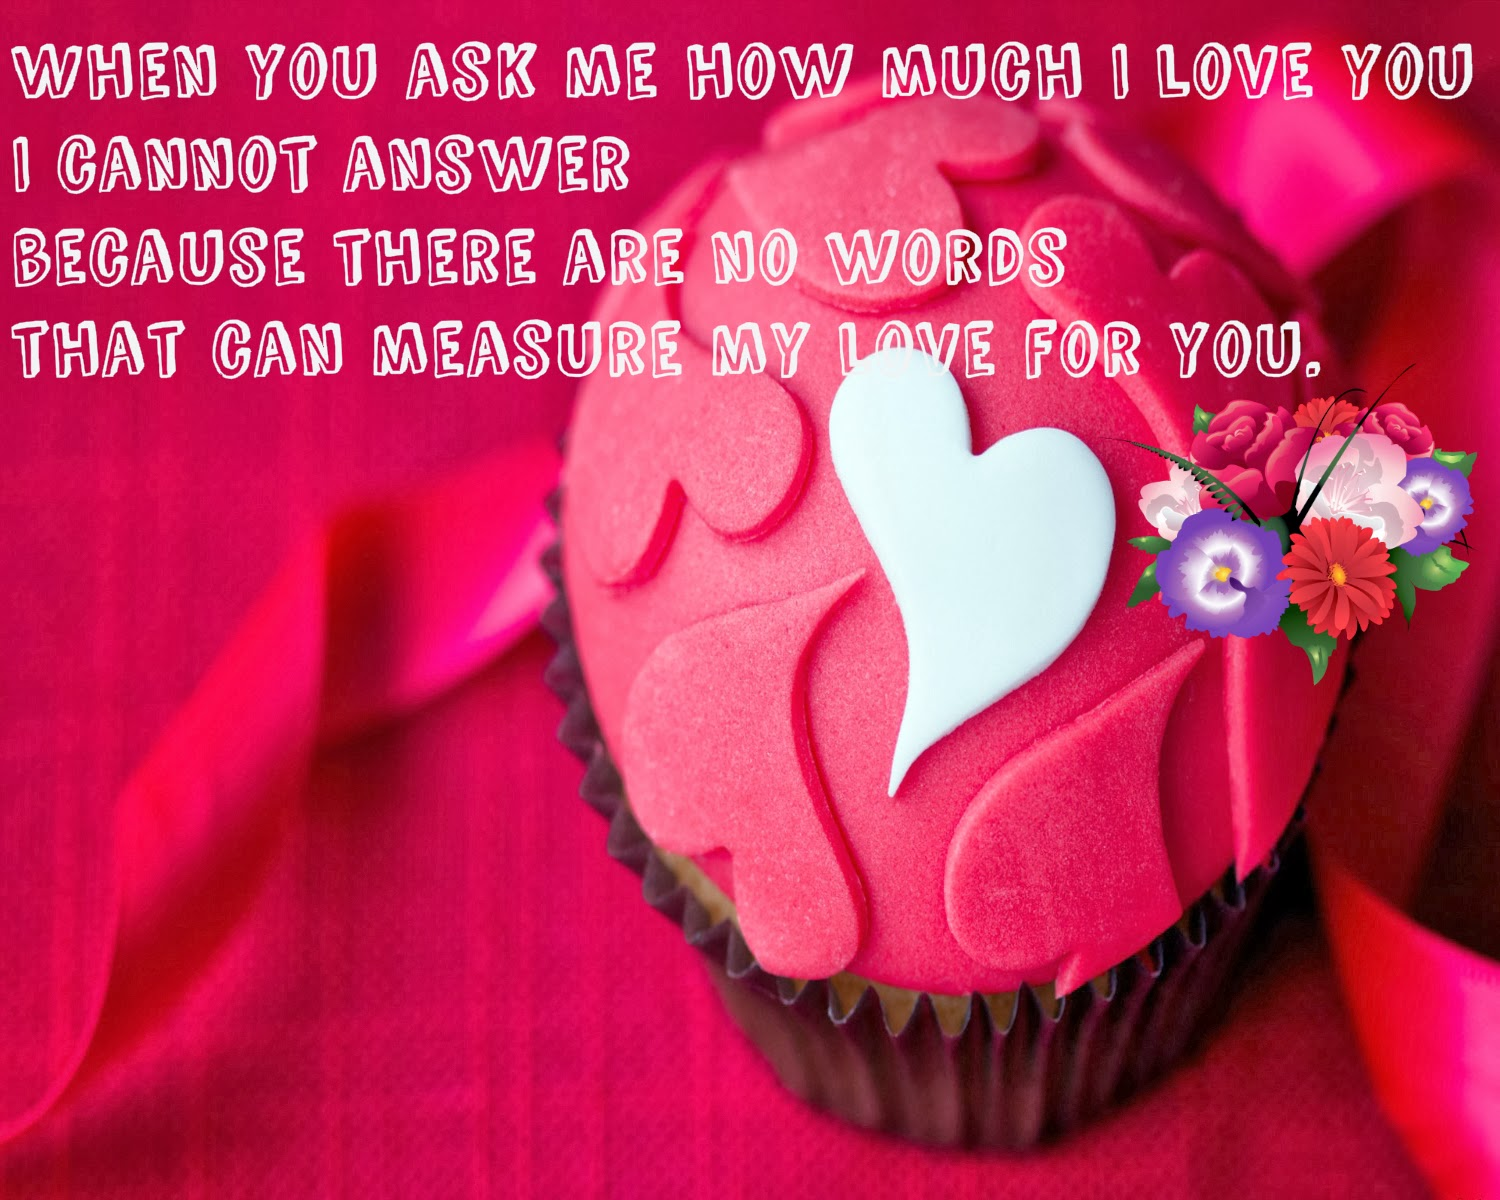 Romantic valentines day love quotes messages for girlfriend and sweet valentines day wishes love messages for boyfriend kristyandbryce Image collections